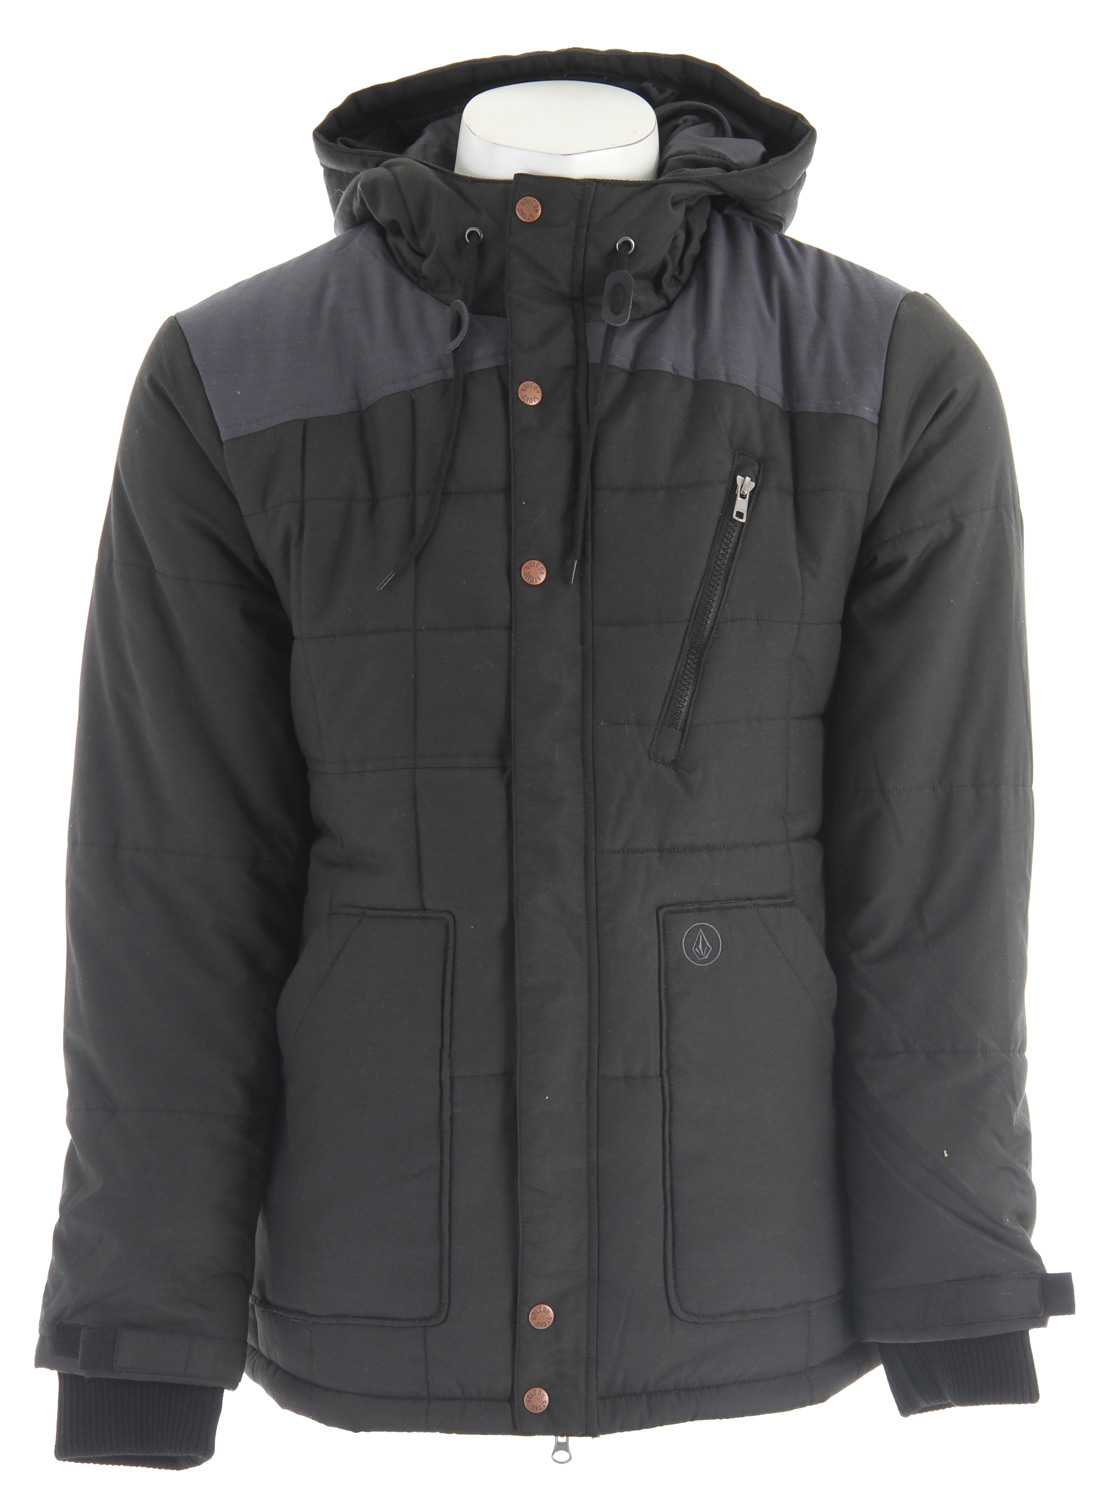 Surf Key Features of the Volcom Stone Rise Jacket: Hooded Parka Quilted poly insulation Contrast shoulder and back hood paneling Covered front zip closure Chest zip pocket Lower hand pockets Full printed lining Outdoor Collection 41% Nylon/40% Polyester/19% Cotton w/ 240g Polyfill - $61.95